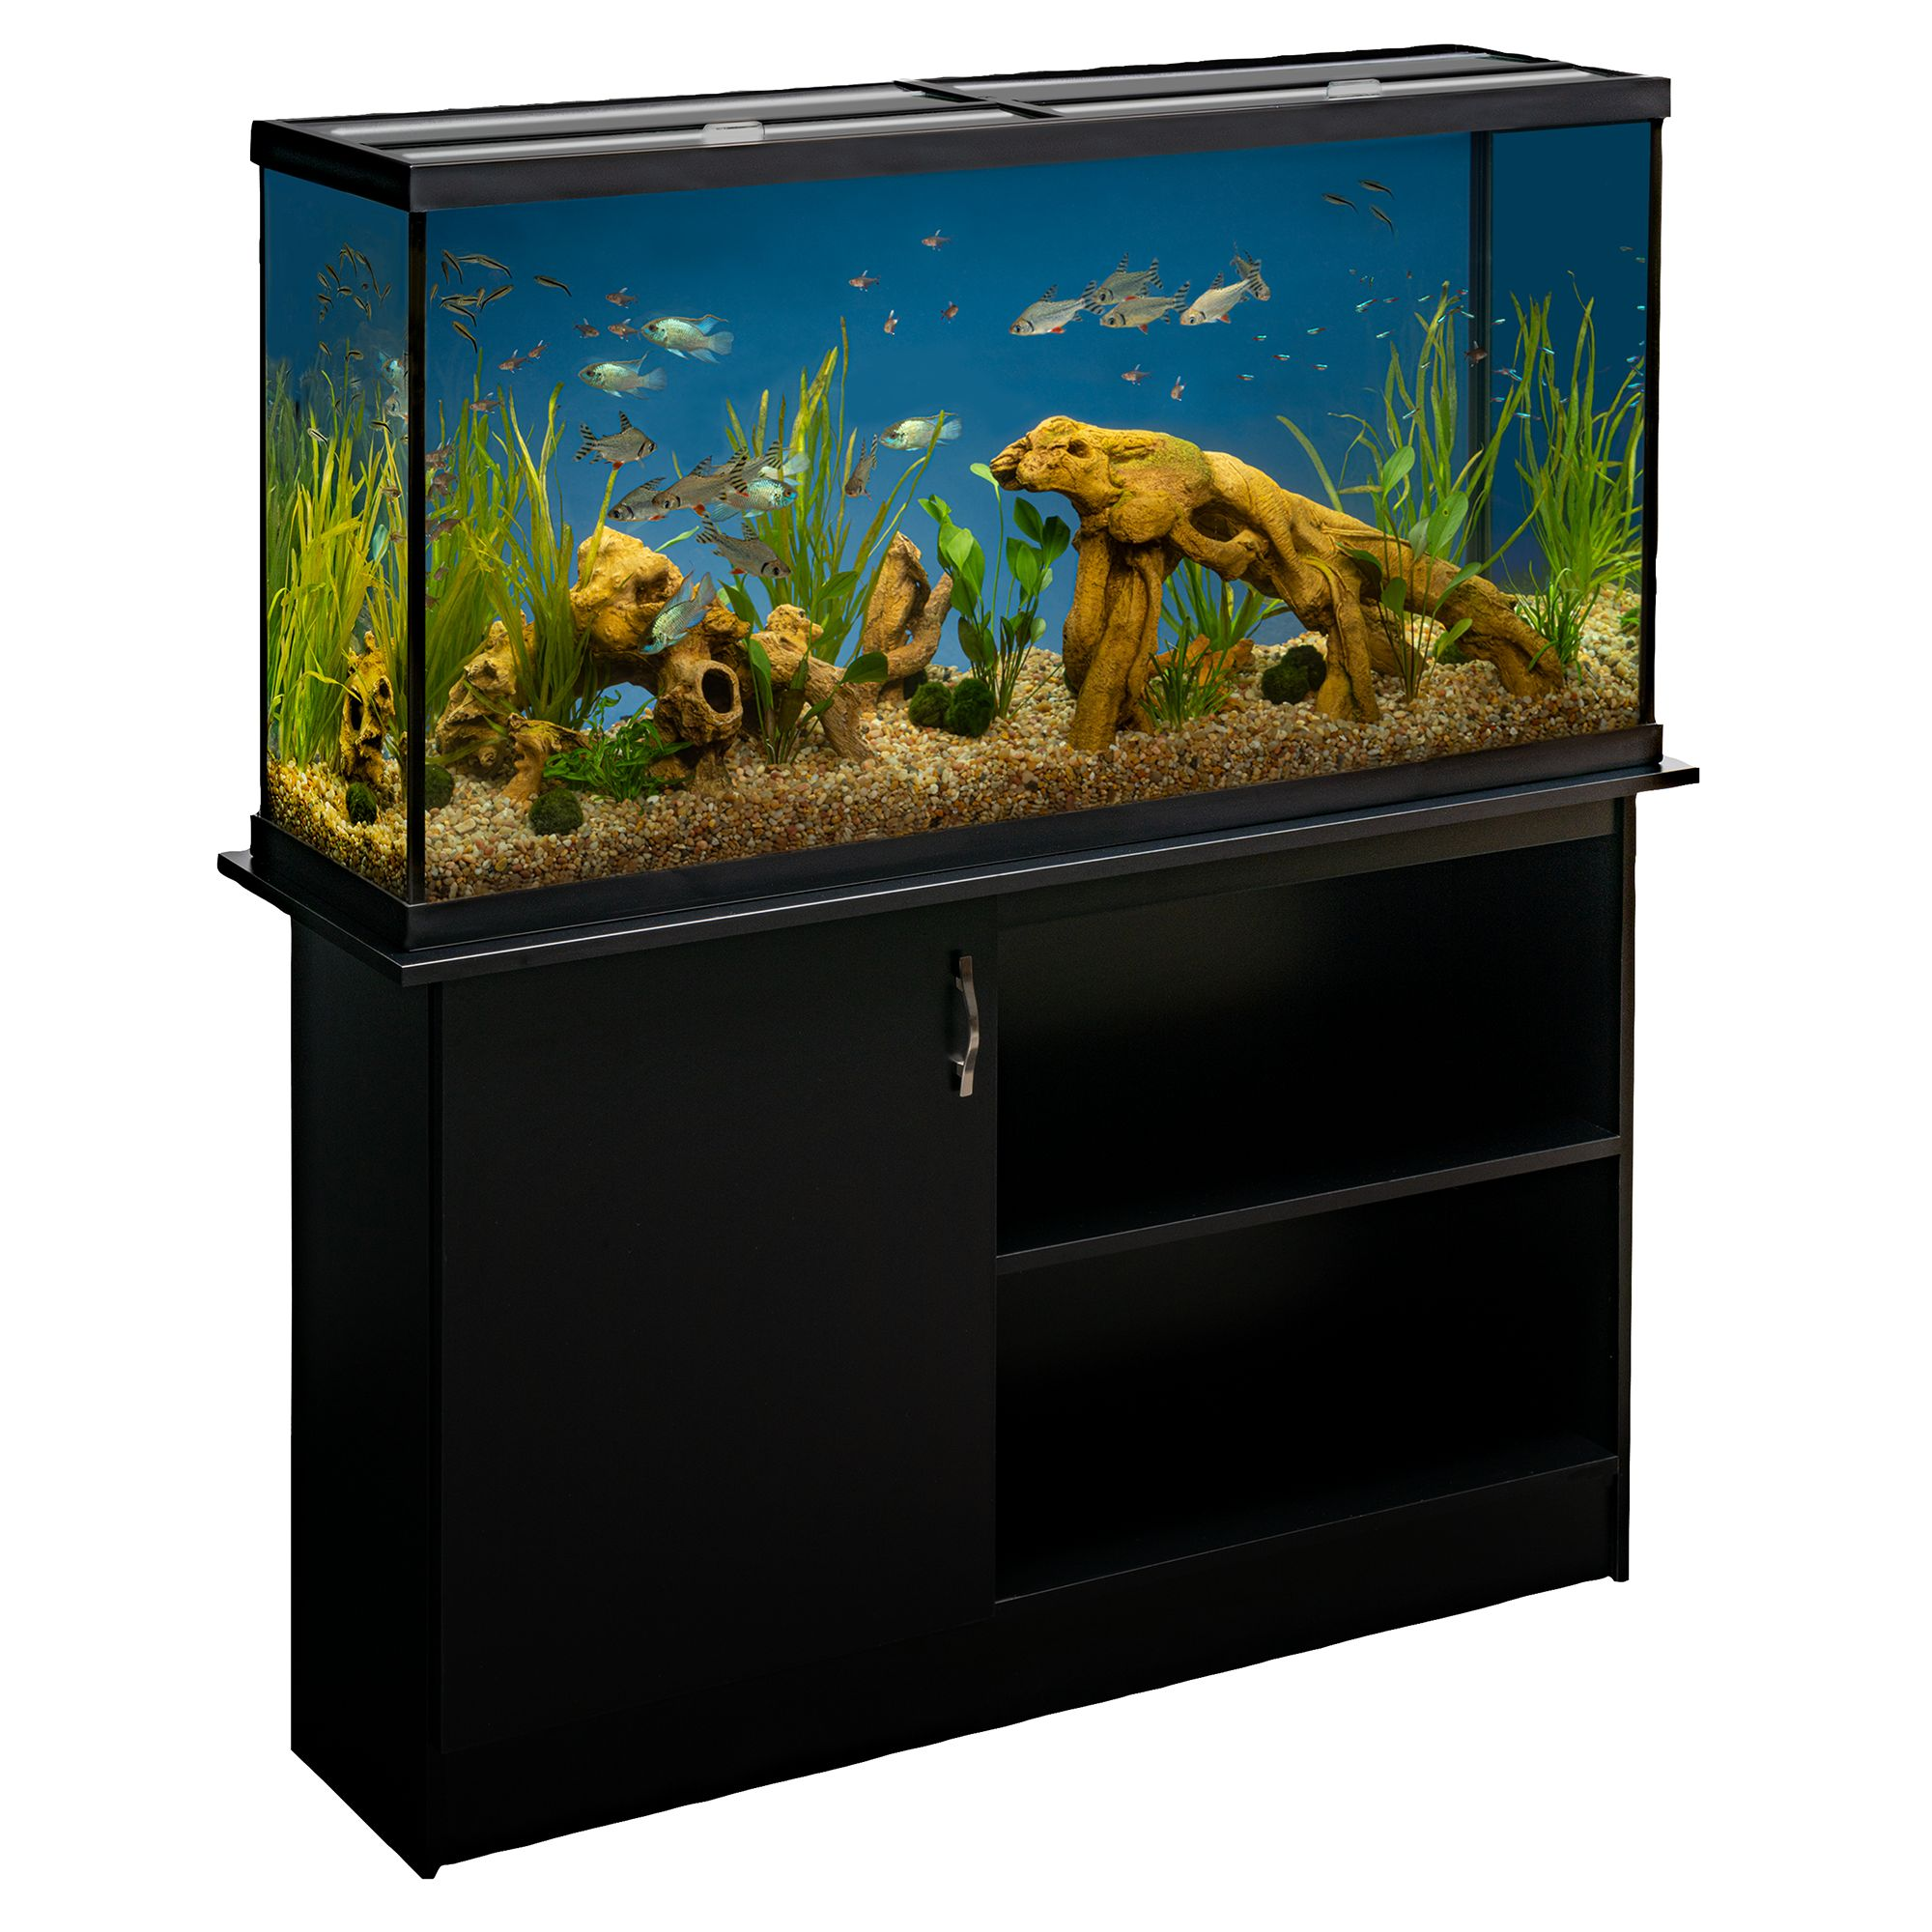 Tanks, Aquariums, & Nets